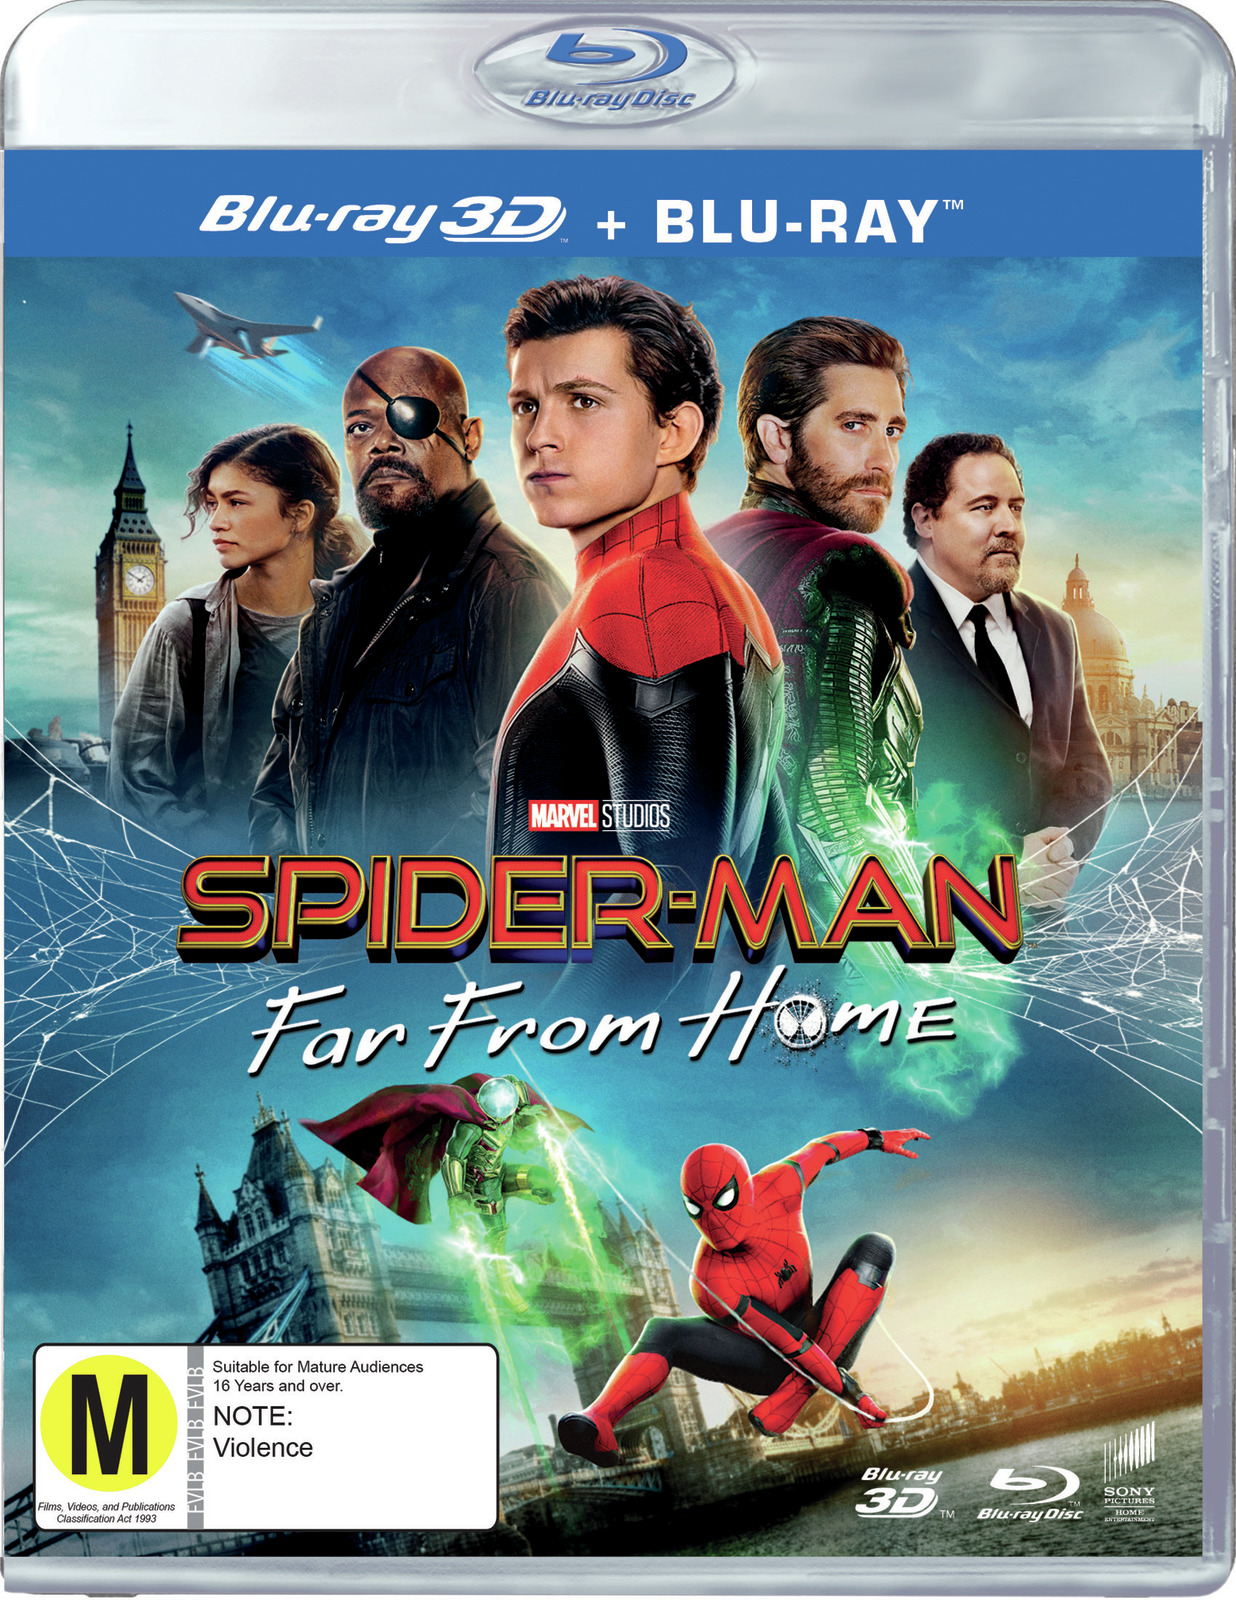 Spider-Man: Far From Home (3D Blu-ray) on 3D Blu-ray image